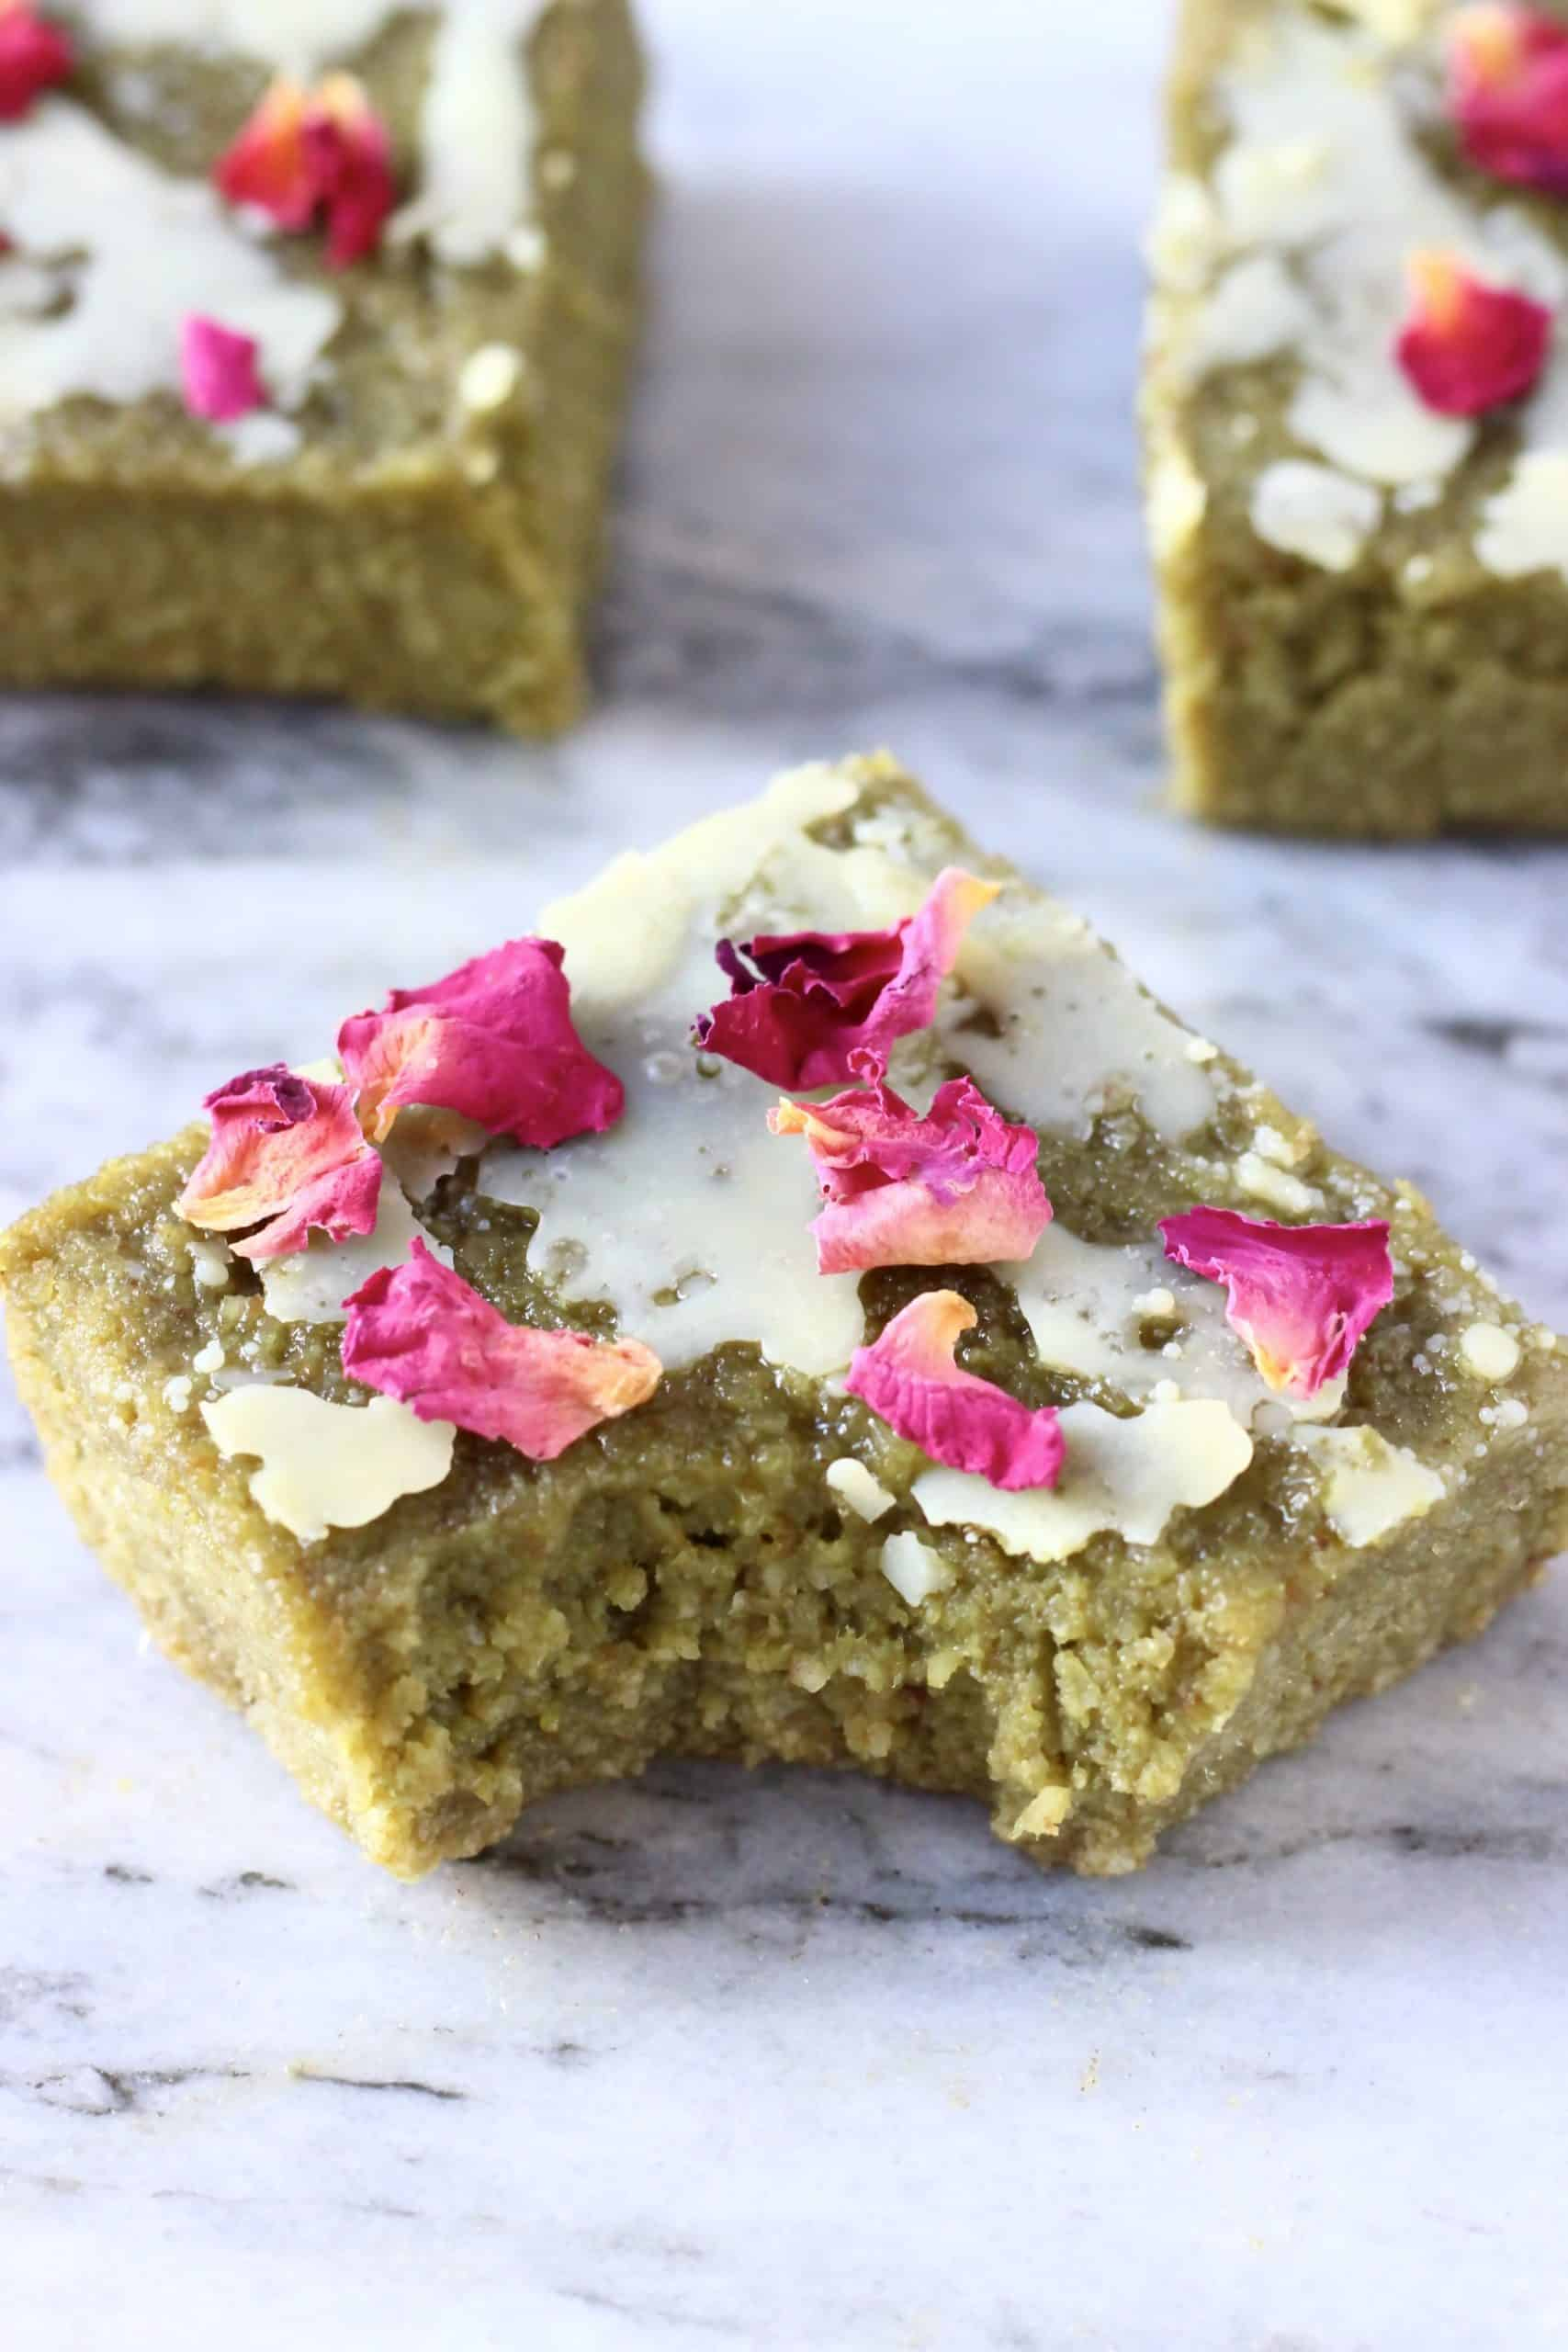 A gluten-free vegan matcha brownie topped with a white chocolate glaze and rose petals with a bite taken out of it